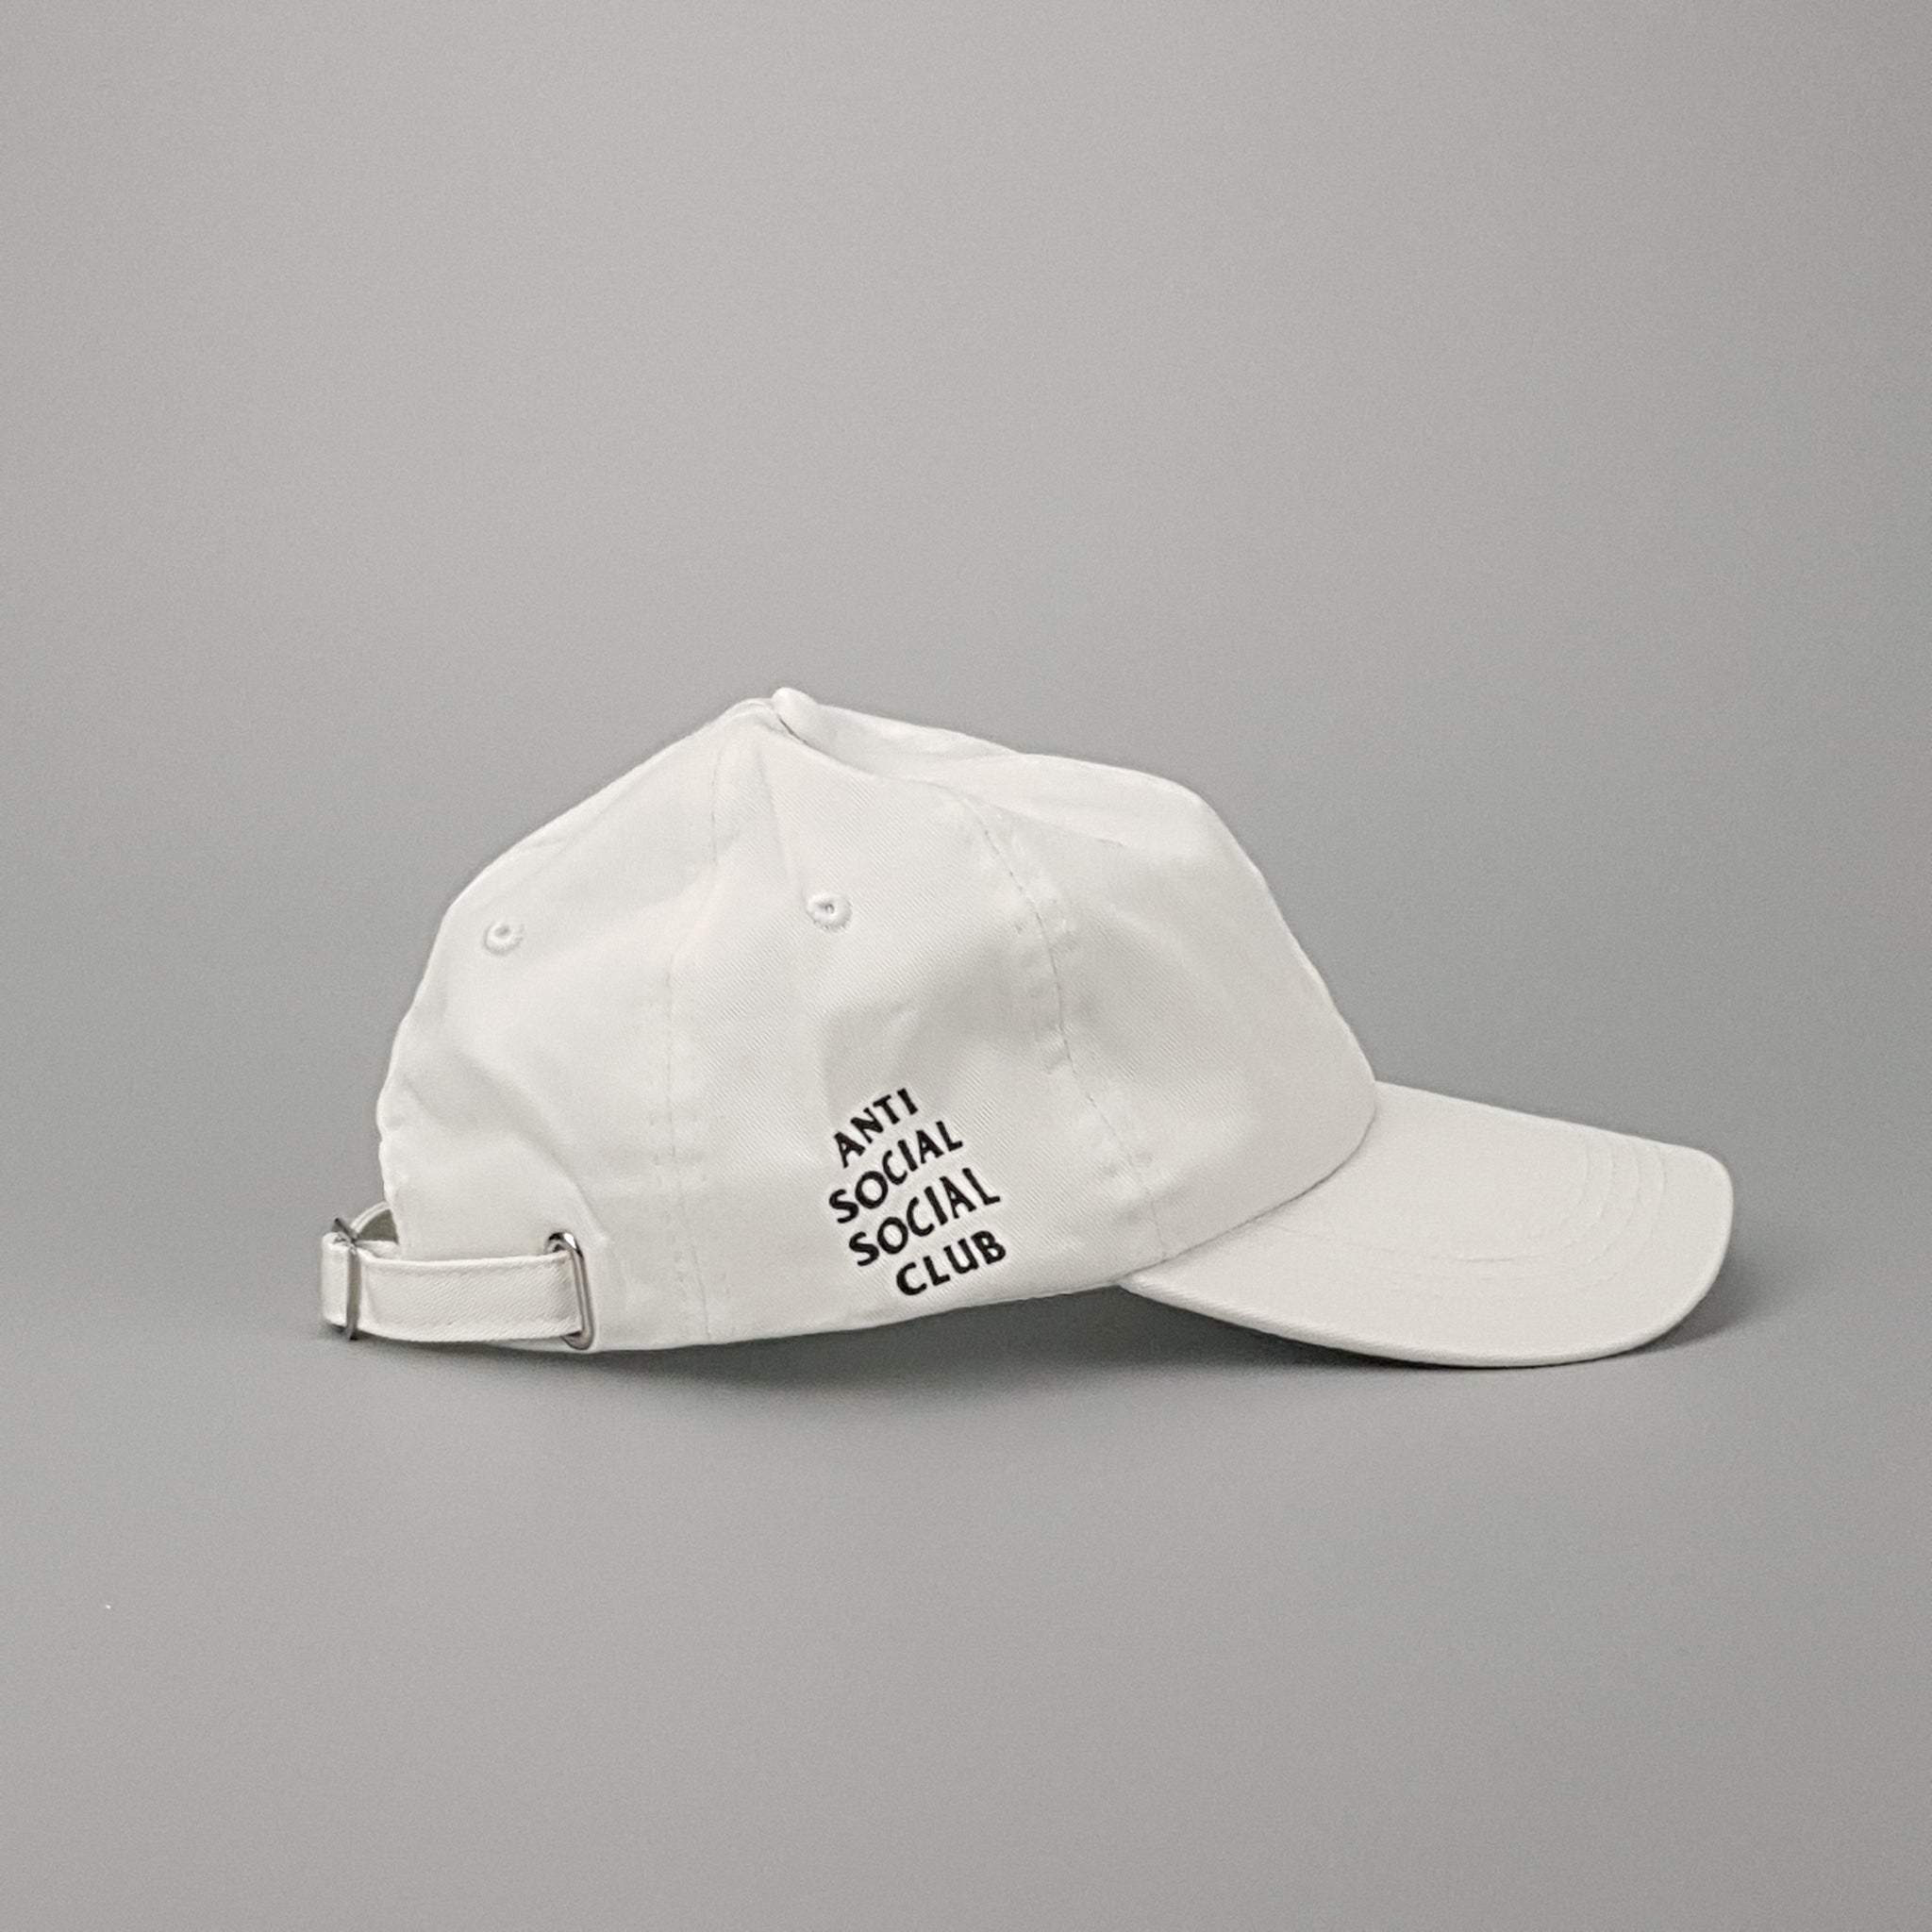 ddd25809d900c ... ASSC Weird Cap - White - Low-Profile Store ...